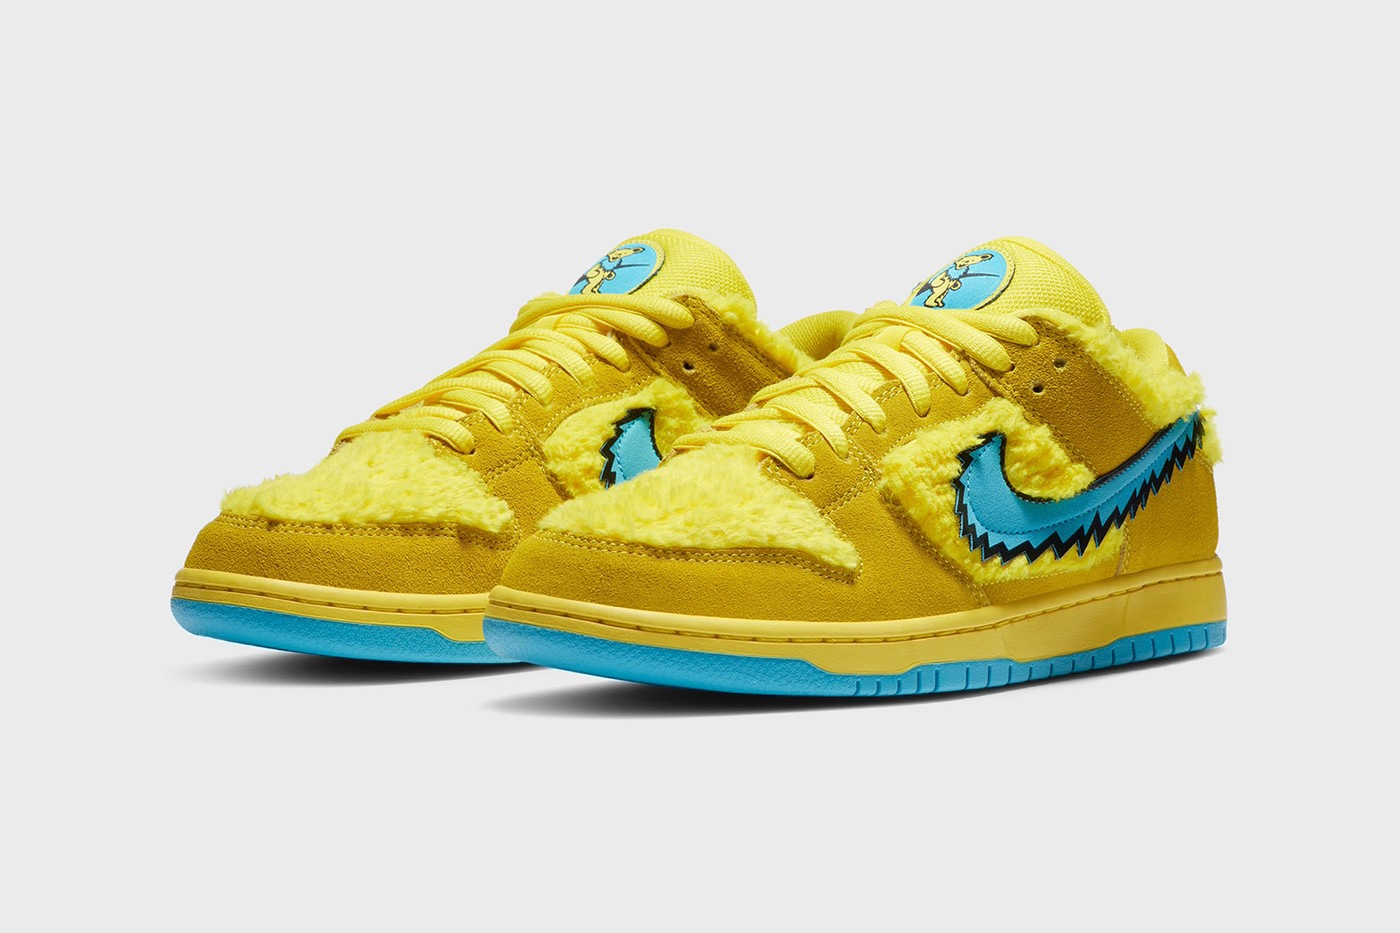 Nike SB Dunk Low Grateful Dead Opti Yellow